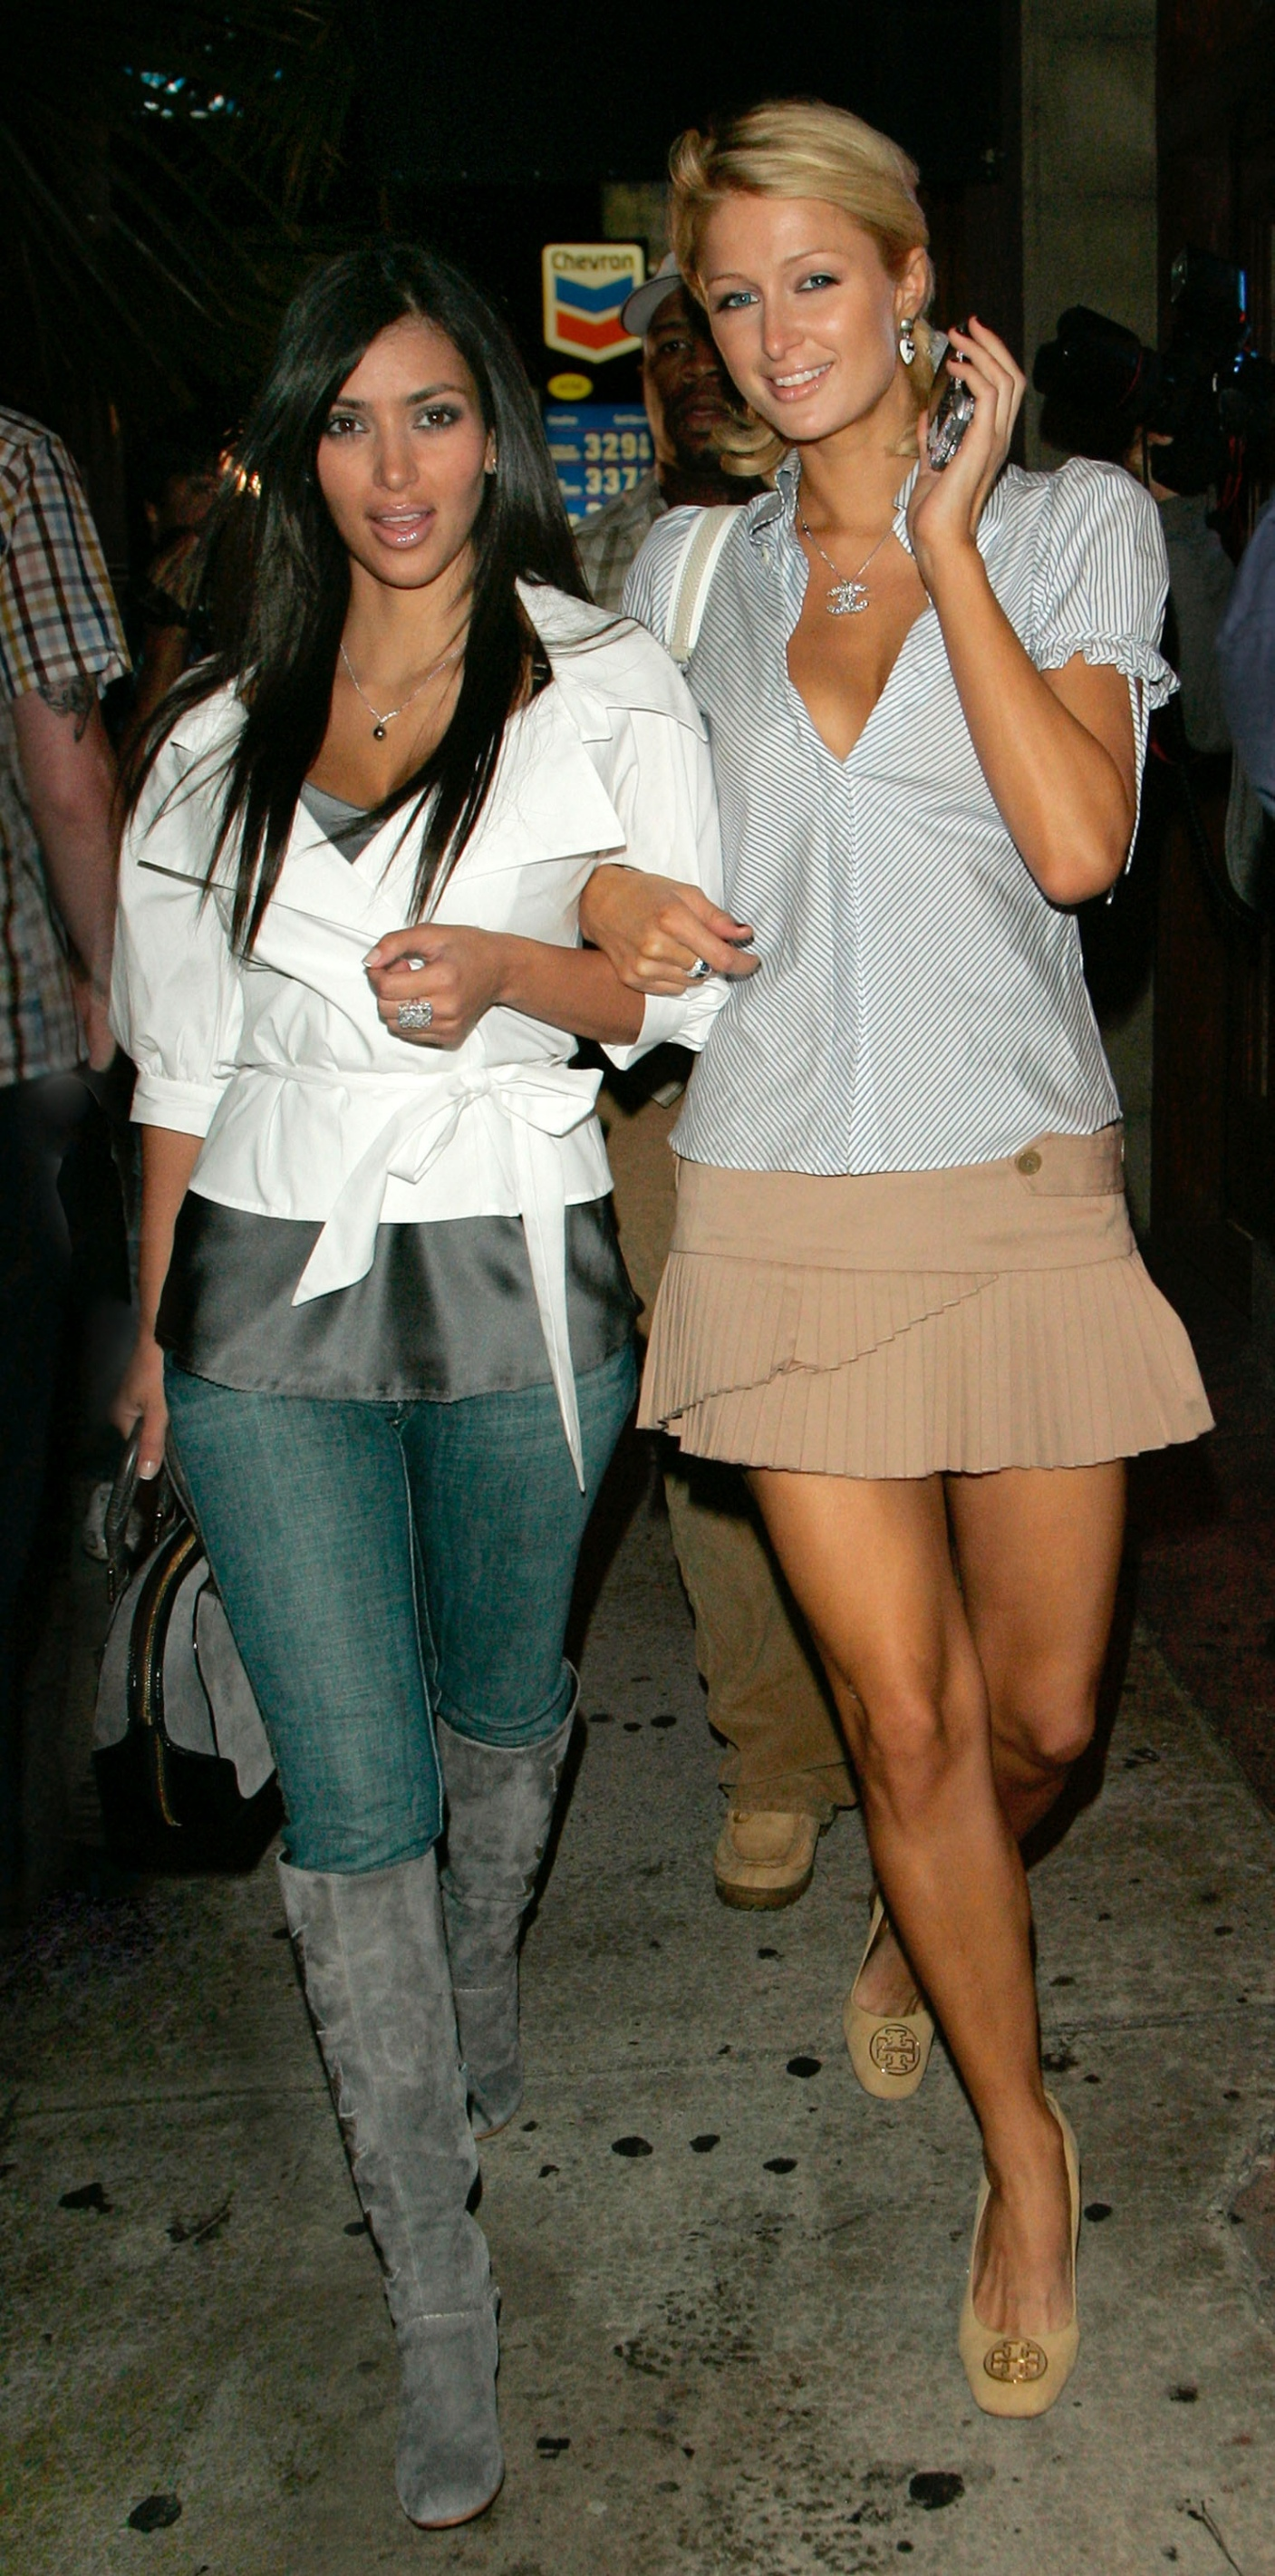 August 27, 2006 - West Hollywood, California, U.S. - 26 August 2006 - West Hollywood, California - Paris Hilton and Kim Kardashian. Hyde Lounge located on Sunset Boulevard (formerly north) is probably no larger than Paris Hilton's closet, but the intimate setting is the big draw. The single room, bathed in gold lighting, is lined with Industry insiders atop banquettes and faux-croc ottomans.,Image: 558060323, License: Rights-managed, Restrictions: , Model Release: no, Credit line: Jackson Lee / Zuma Press / Profimedia